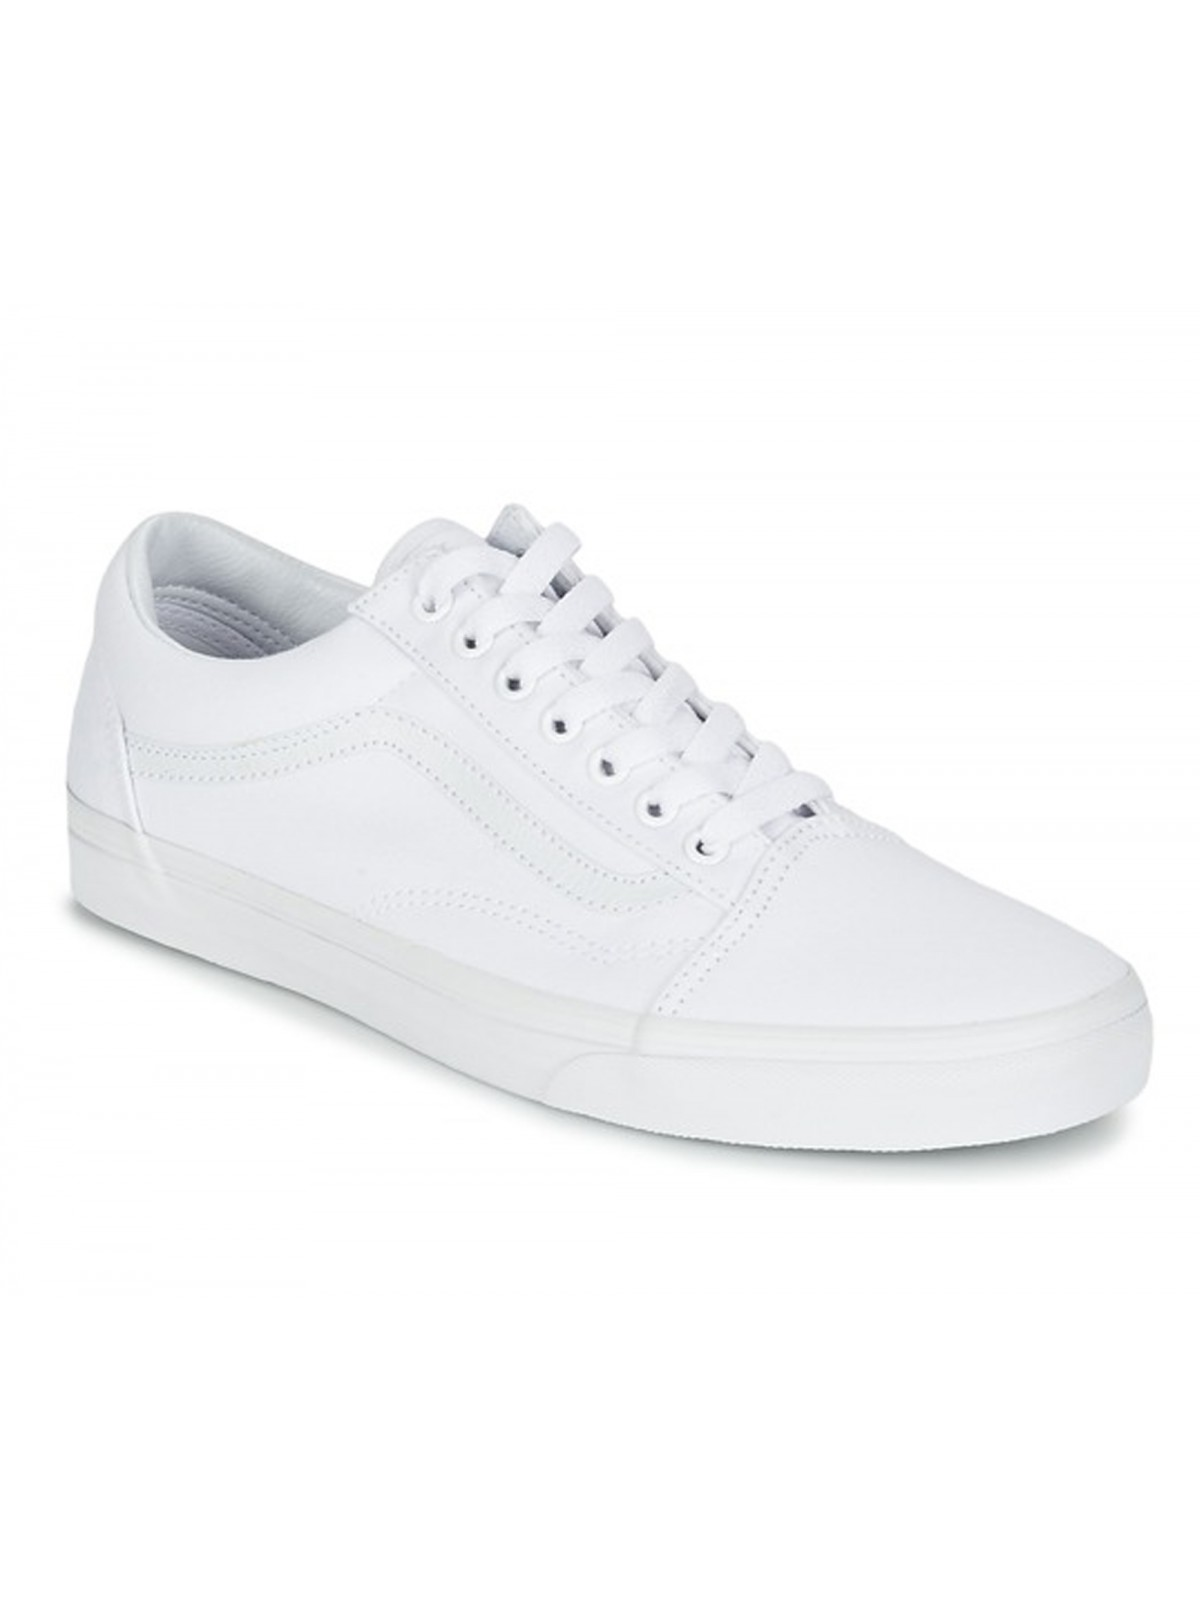 Vans Old Skool canvas mono blanc